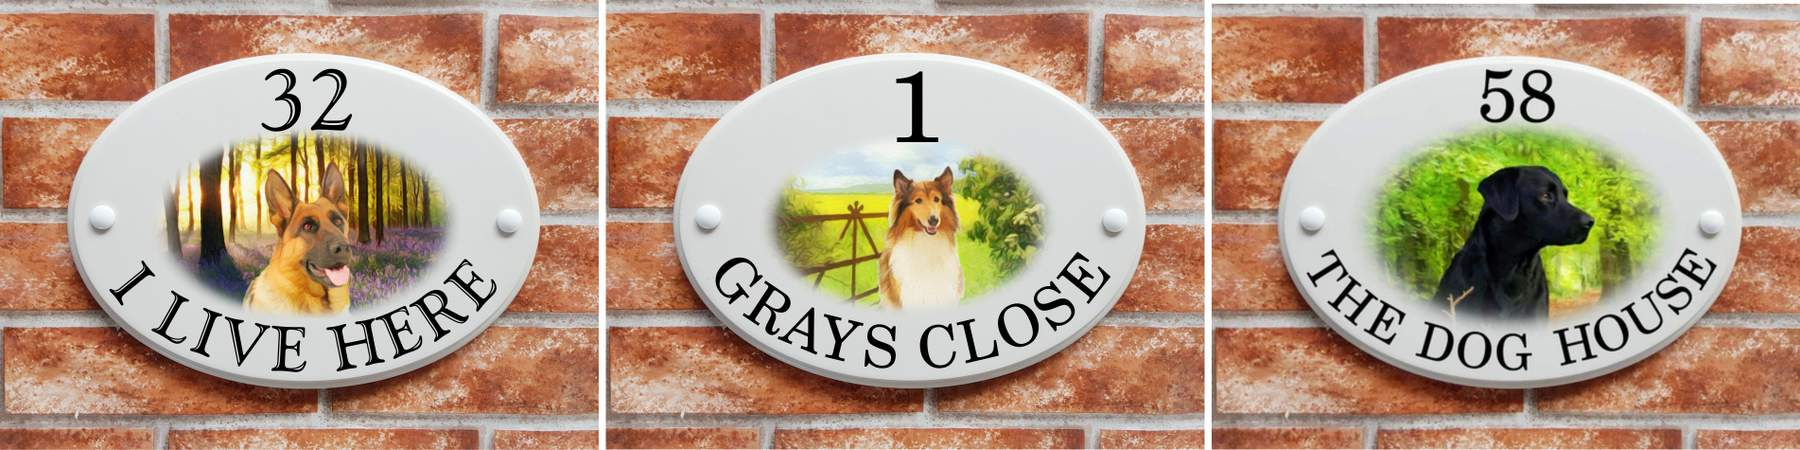 Dog breed house signs